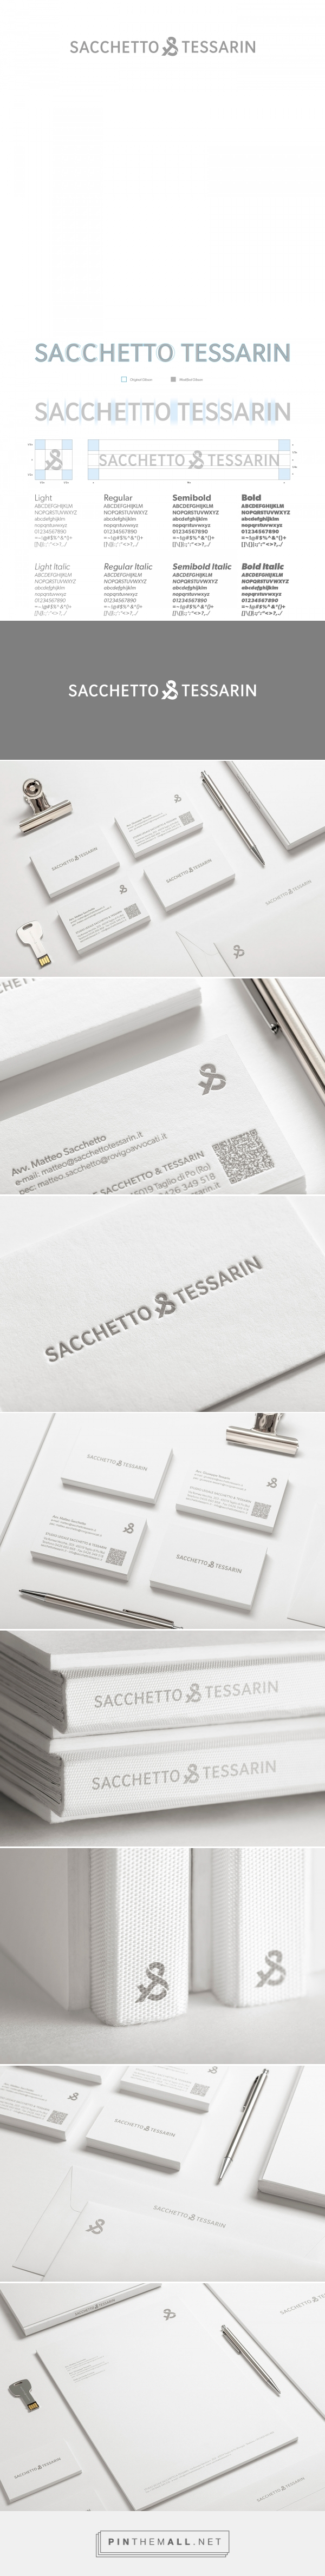 Sacchetto & Tessarin / Law Firm / Branding on Behance - created via…